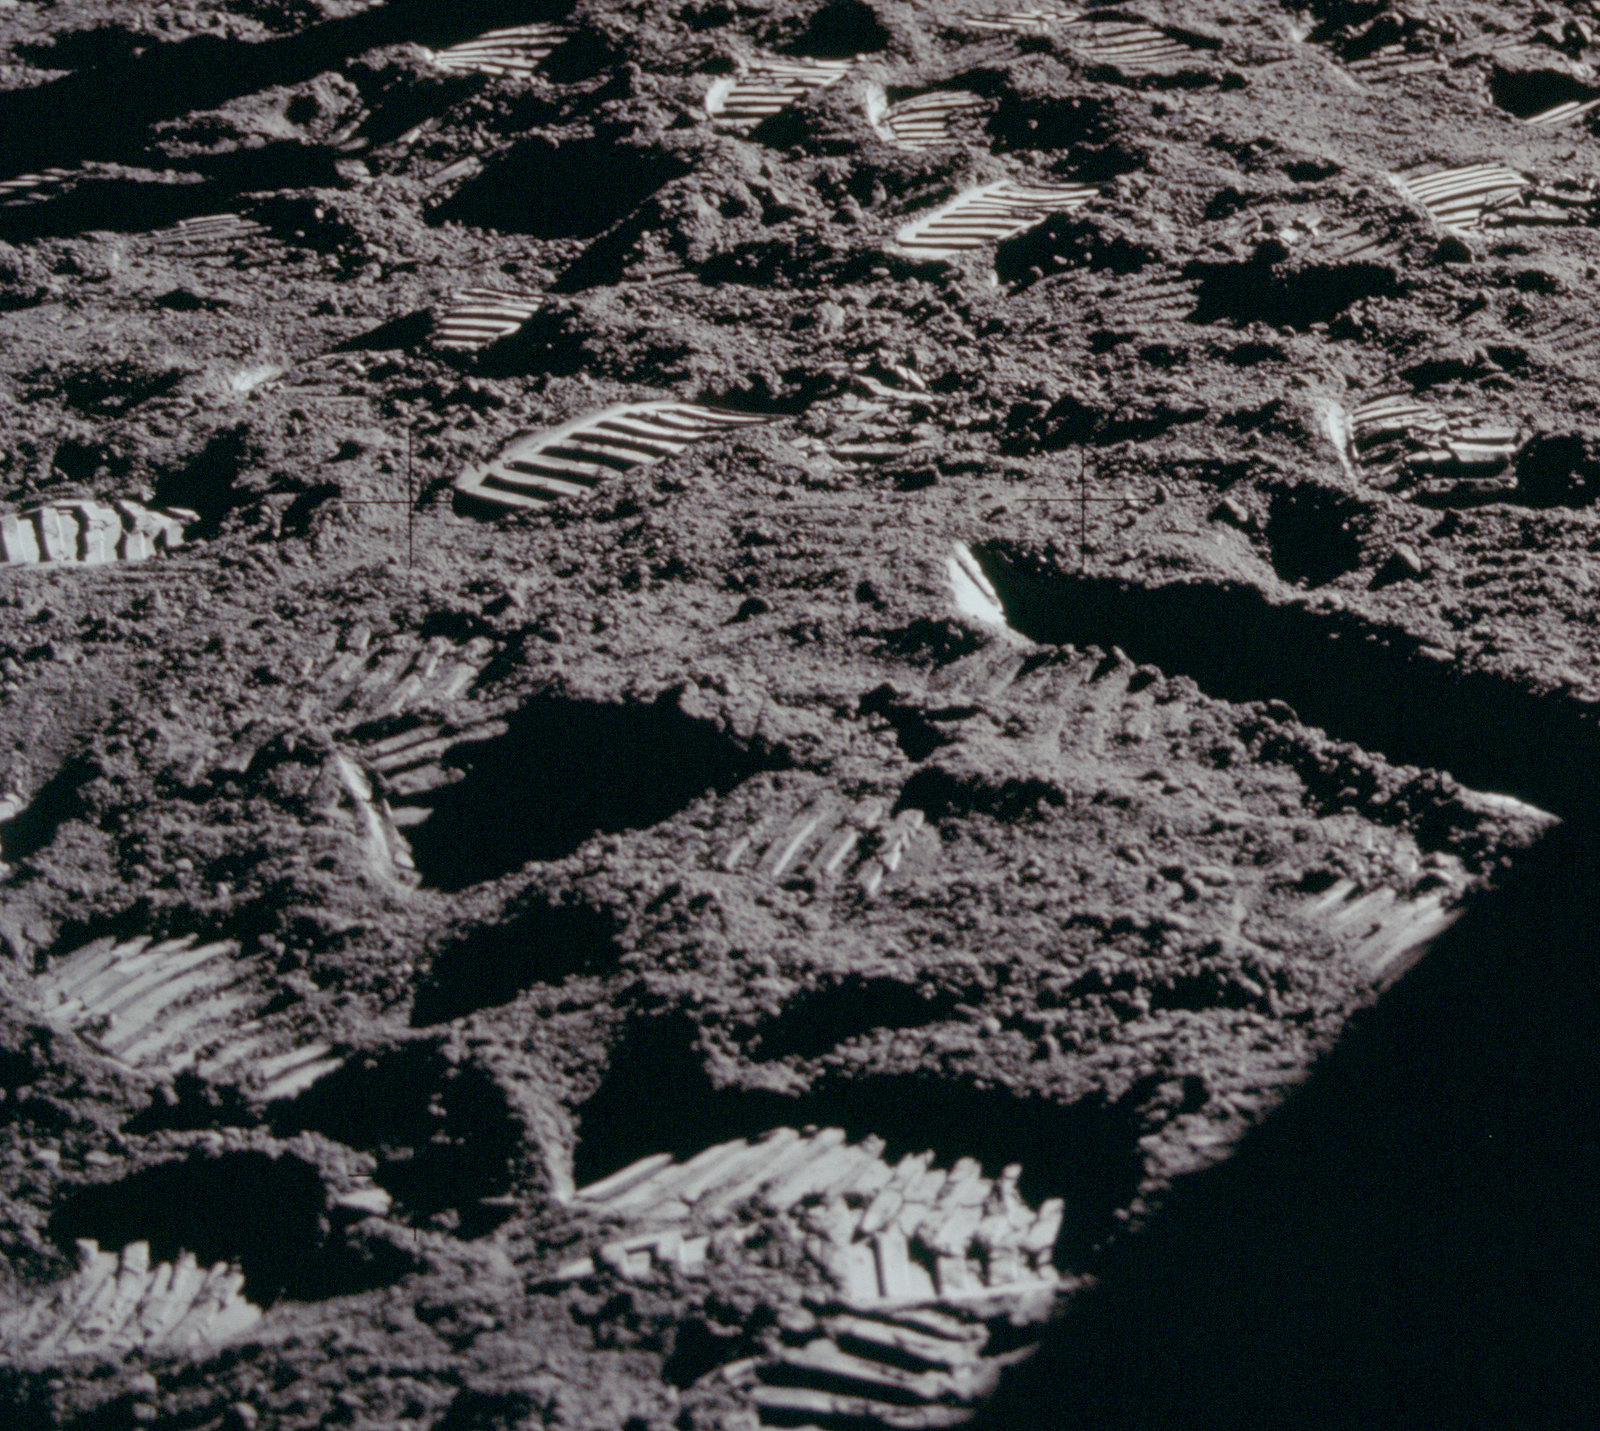 apollo-footprints-2